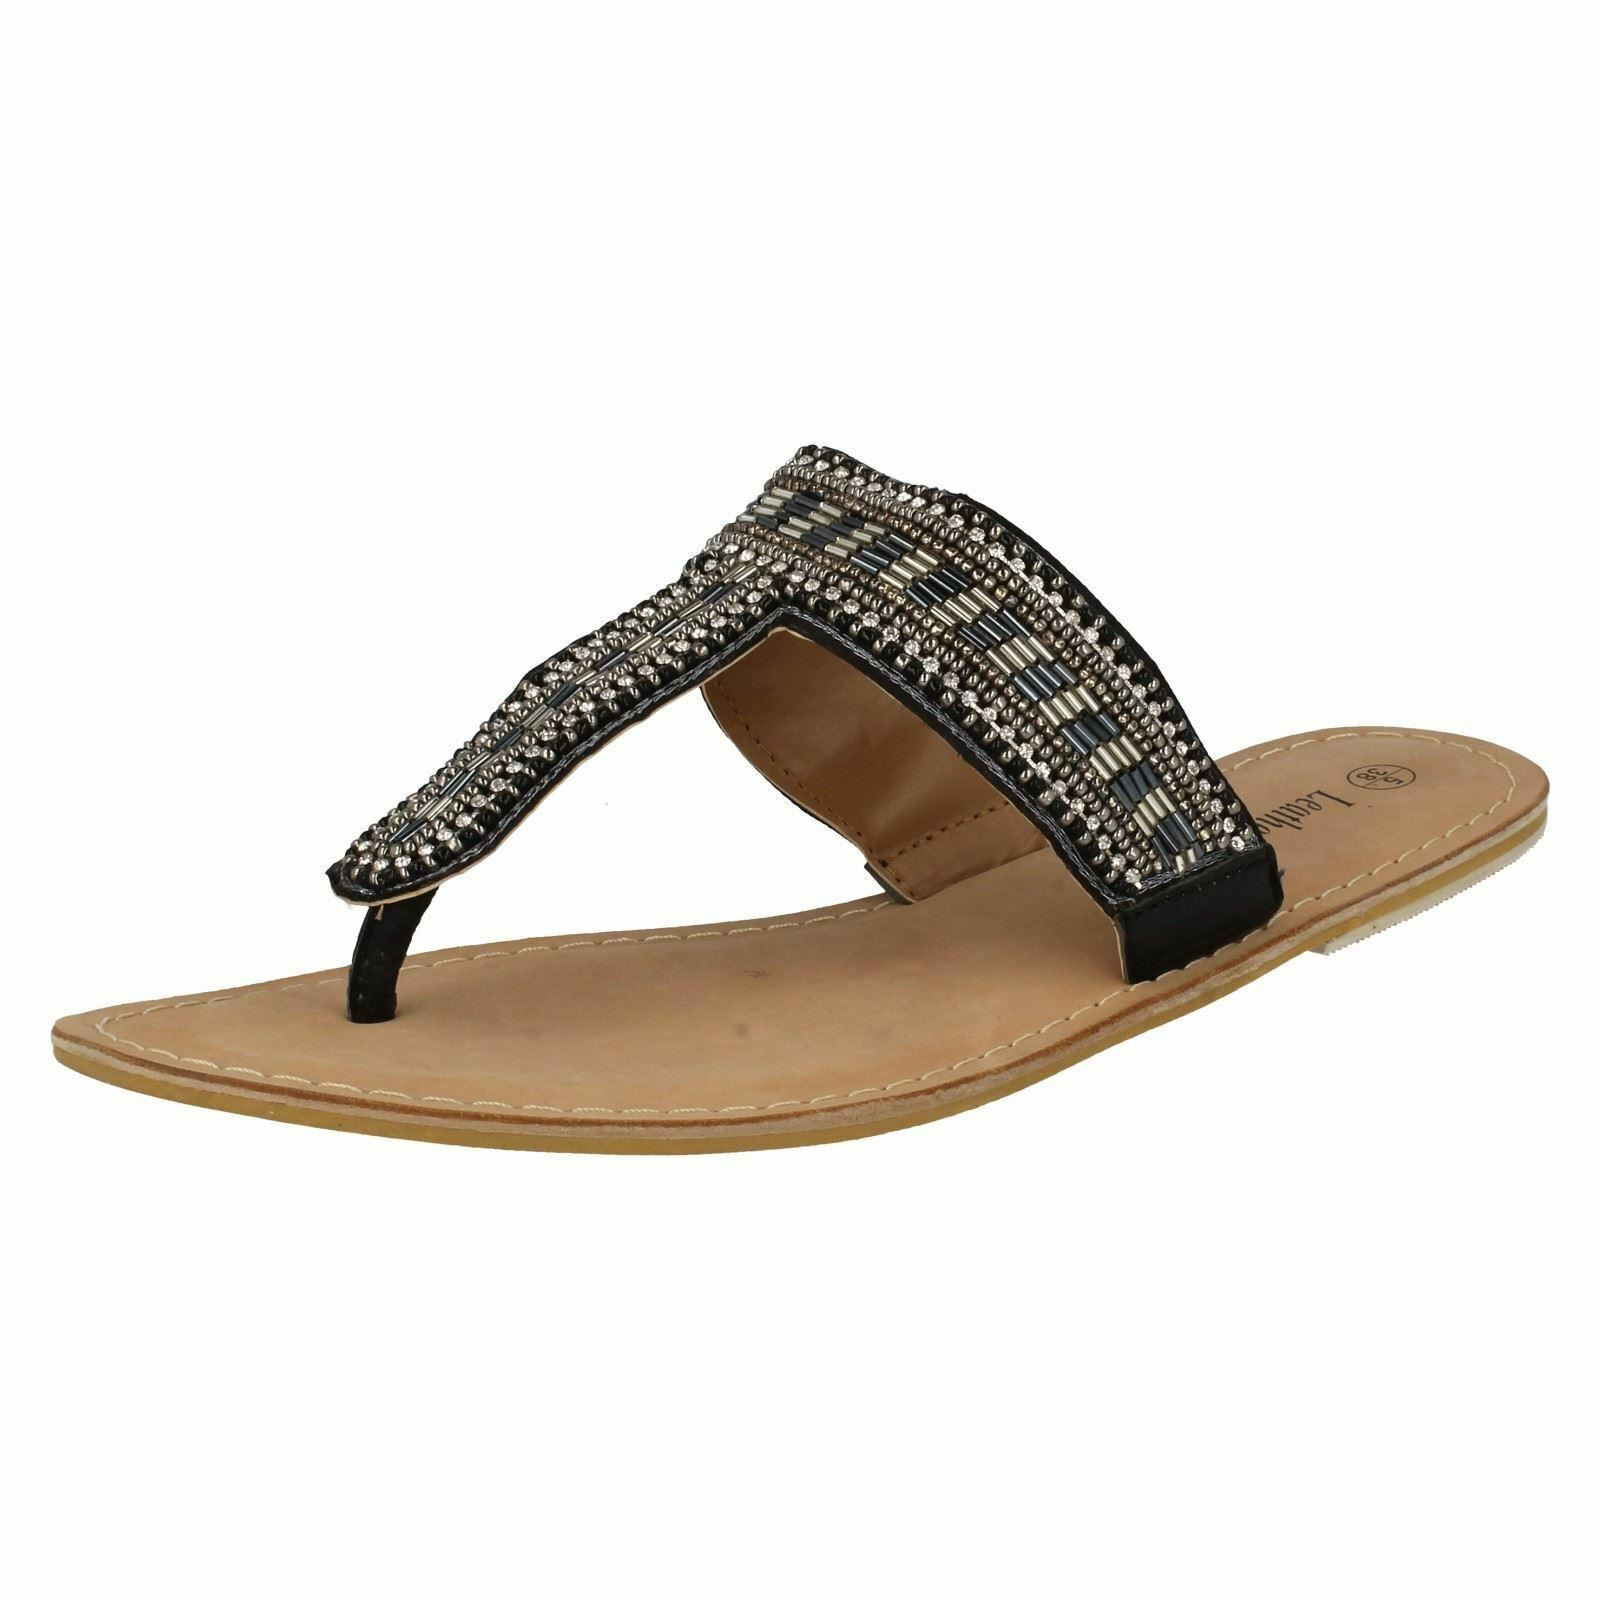 SALE Leather Collection Toe F0895 Ladies Black Beaded Leather Toe Collection Post Sandals 319cd4